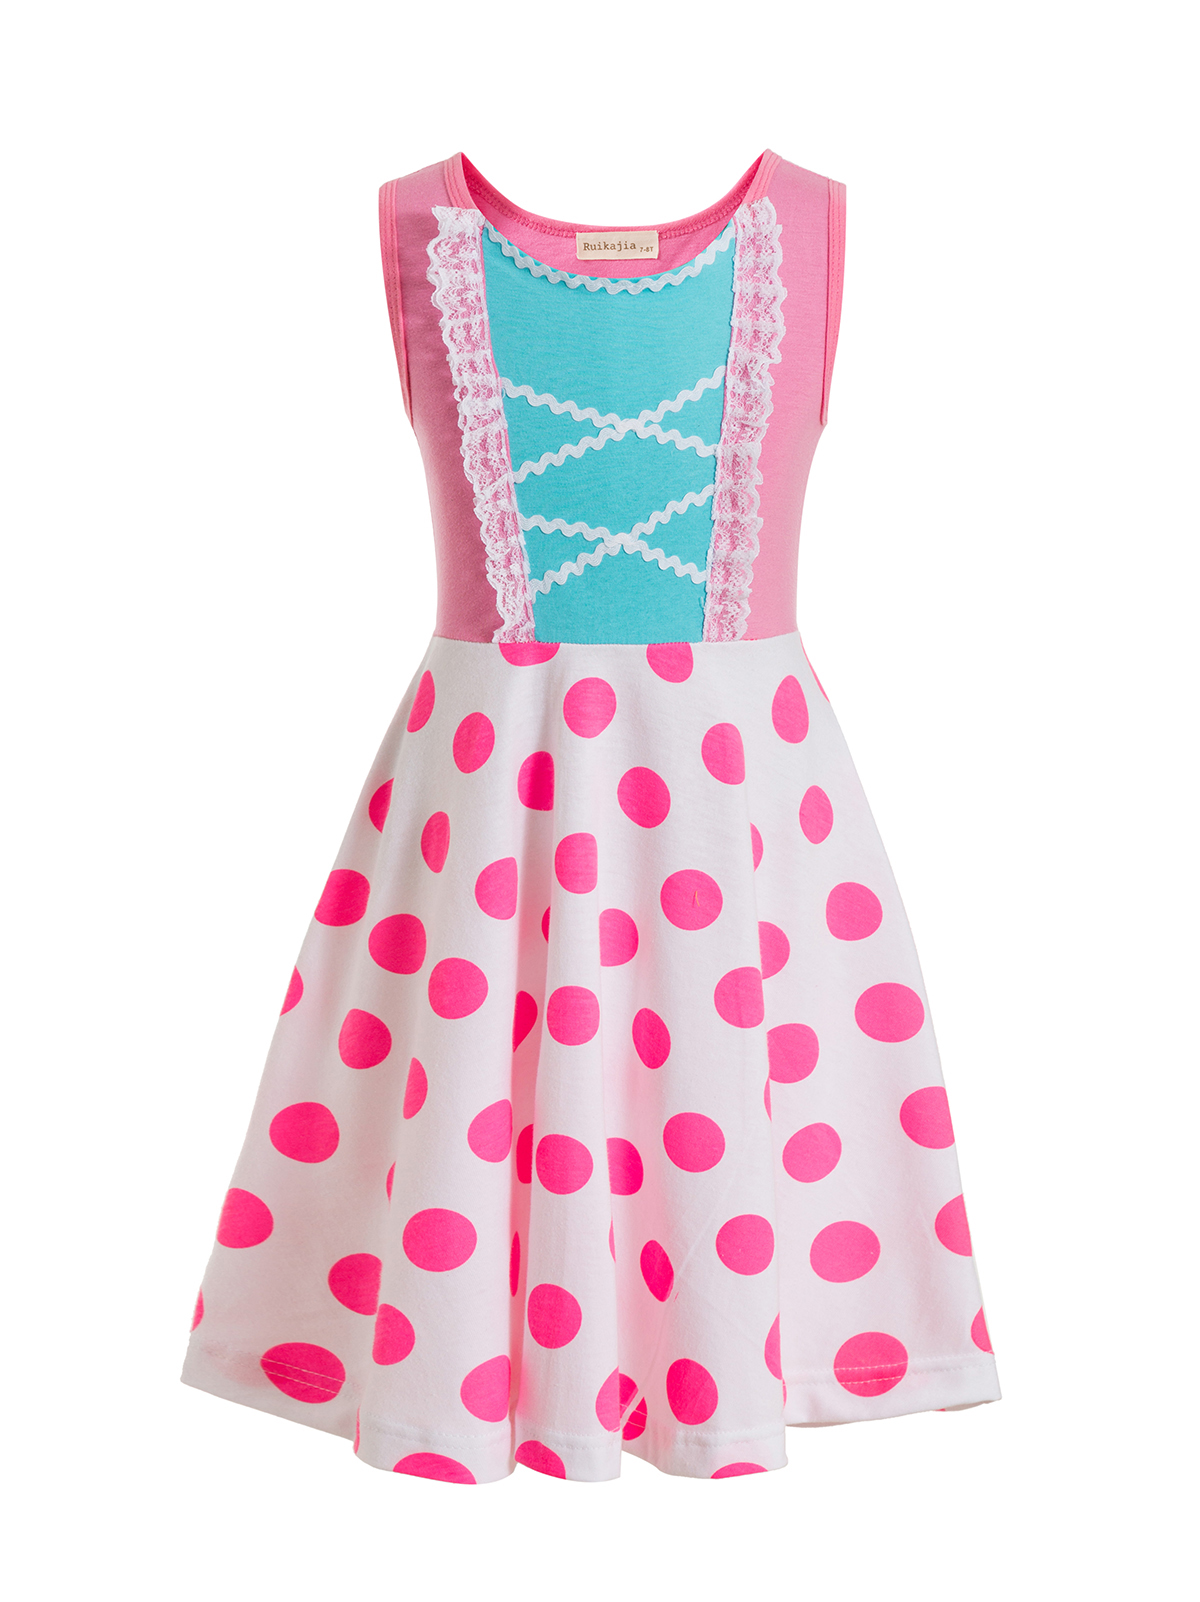 Toy-Story Party-Dresses Birthday Peep-Costume Polka-Dot Princess Kids Children for Bo